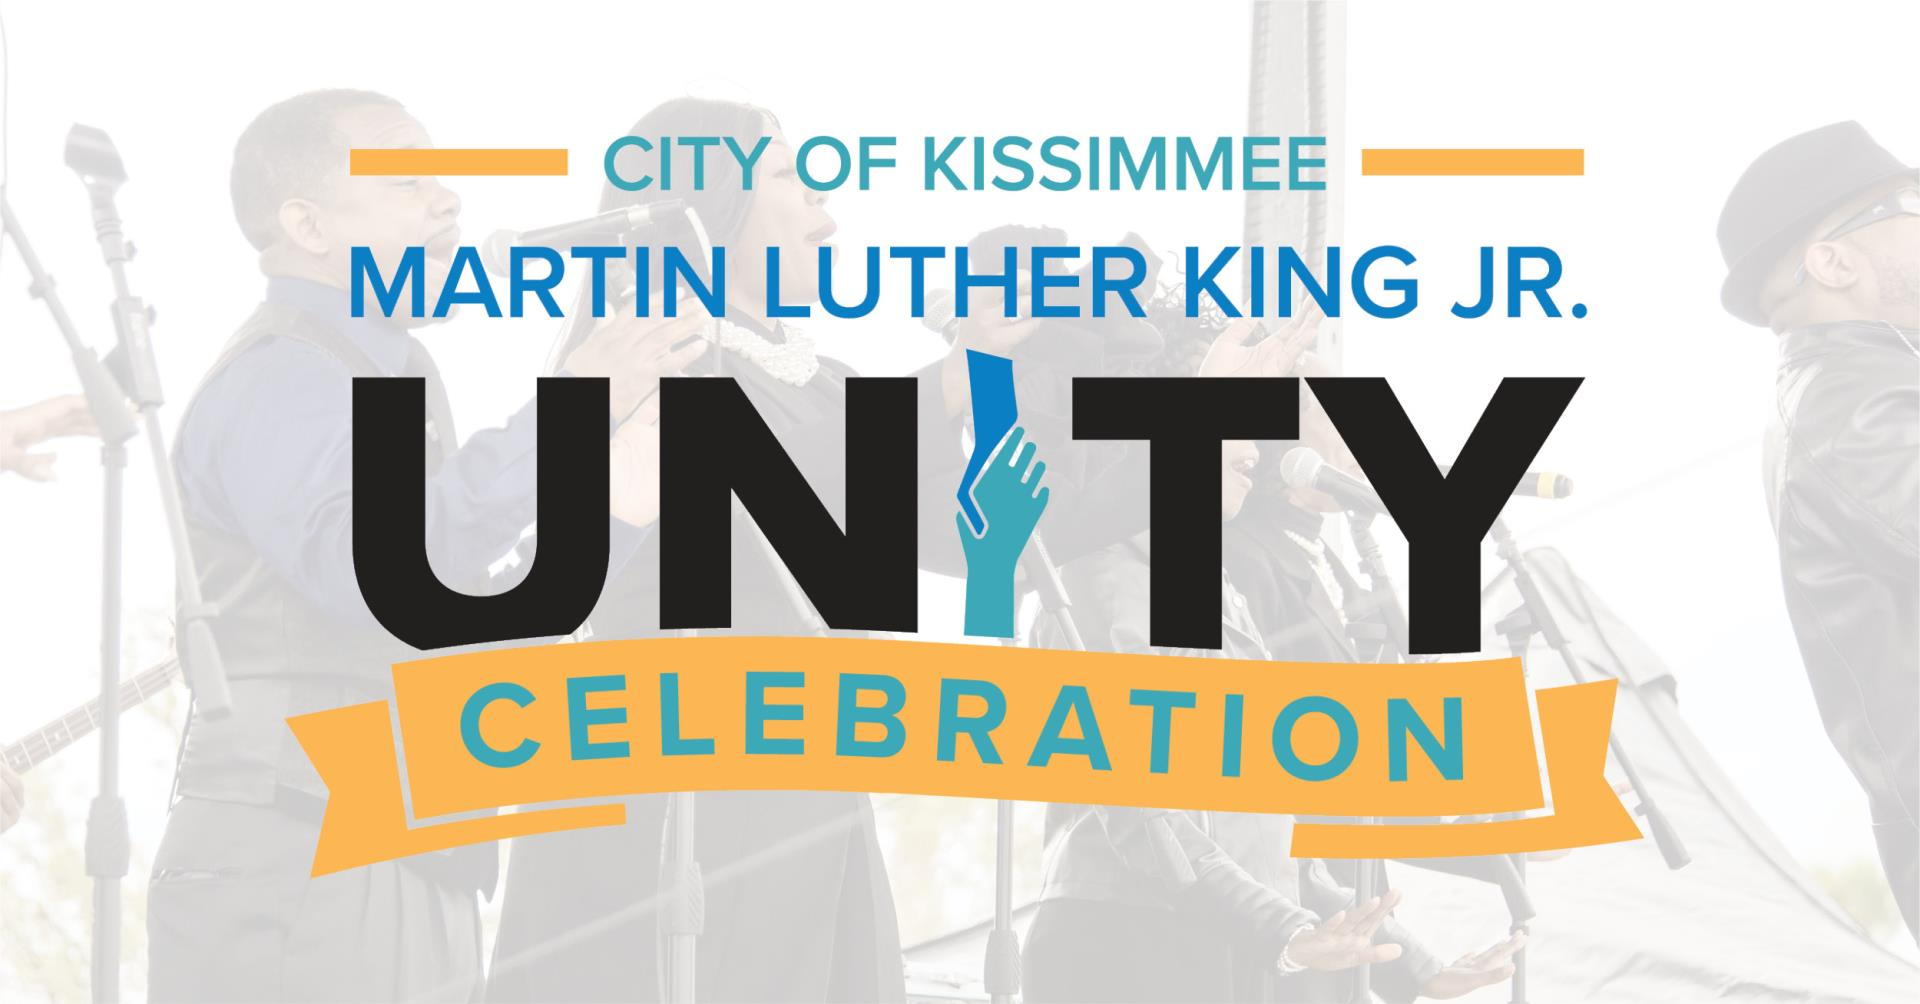 MLK Unity Celebration 2019 city of kissimmee events